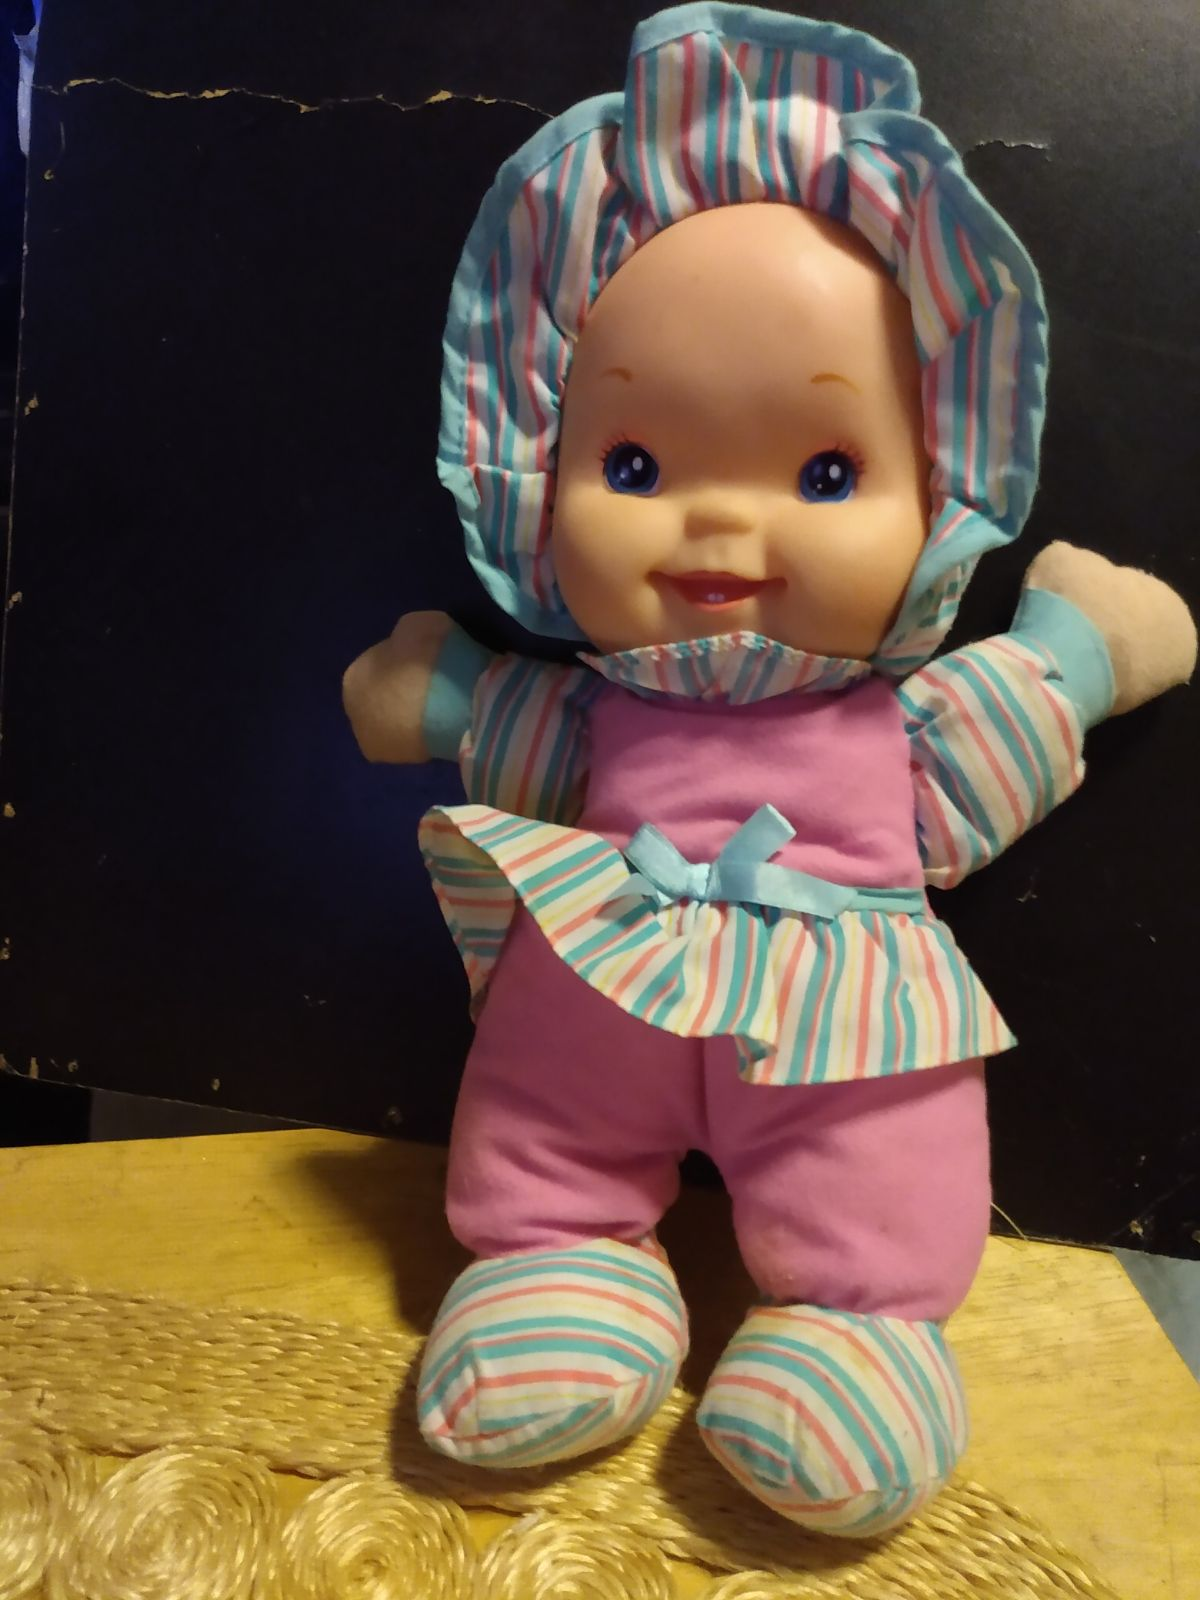 Laughing Soft Giggling Doll